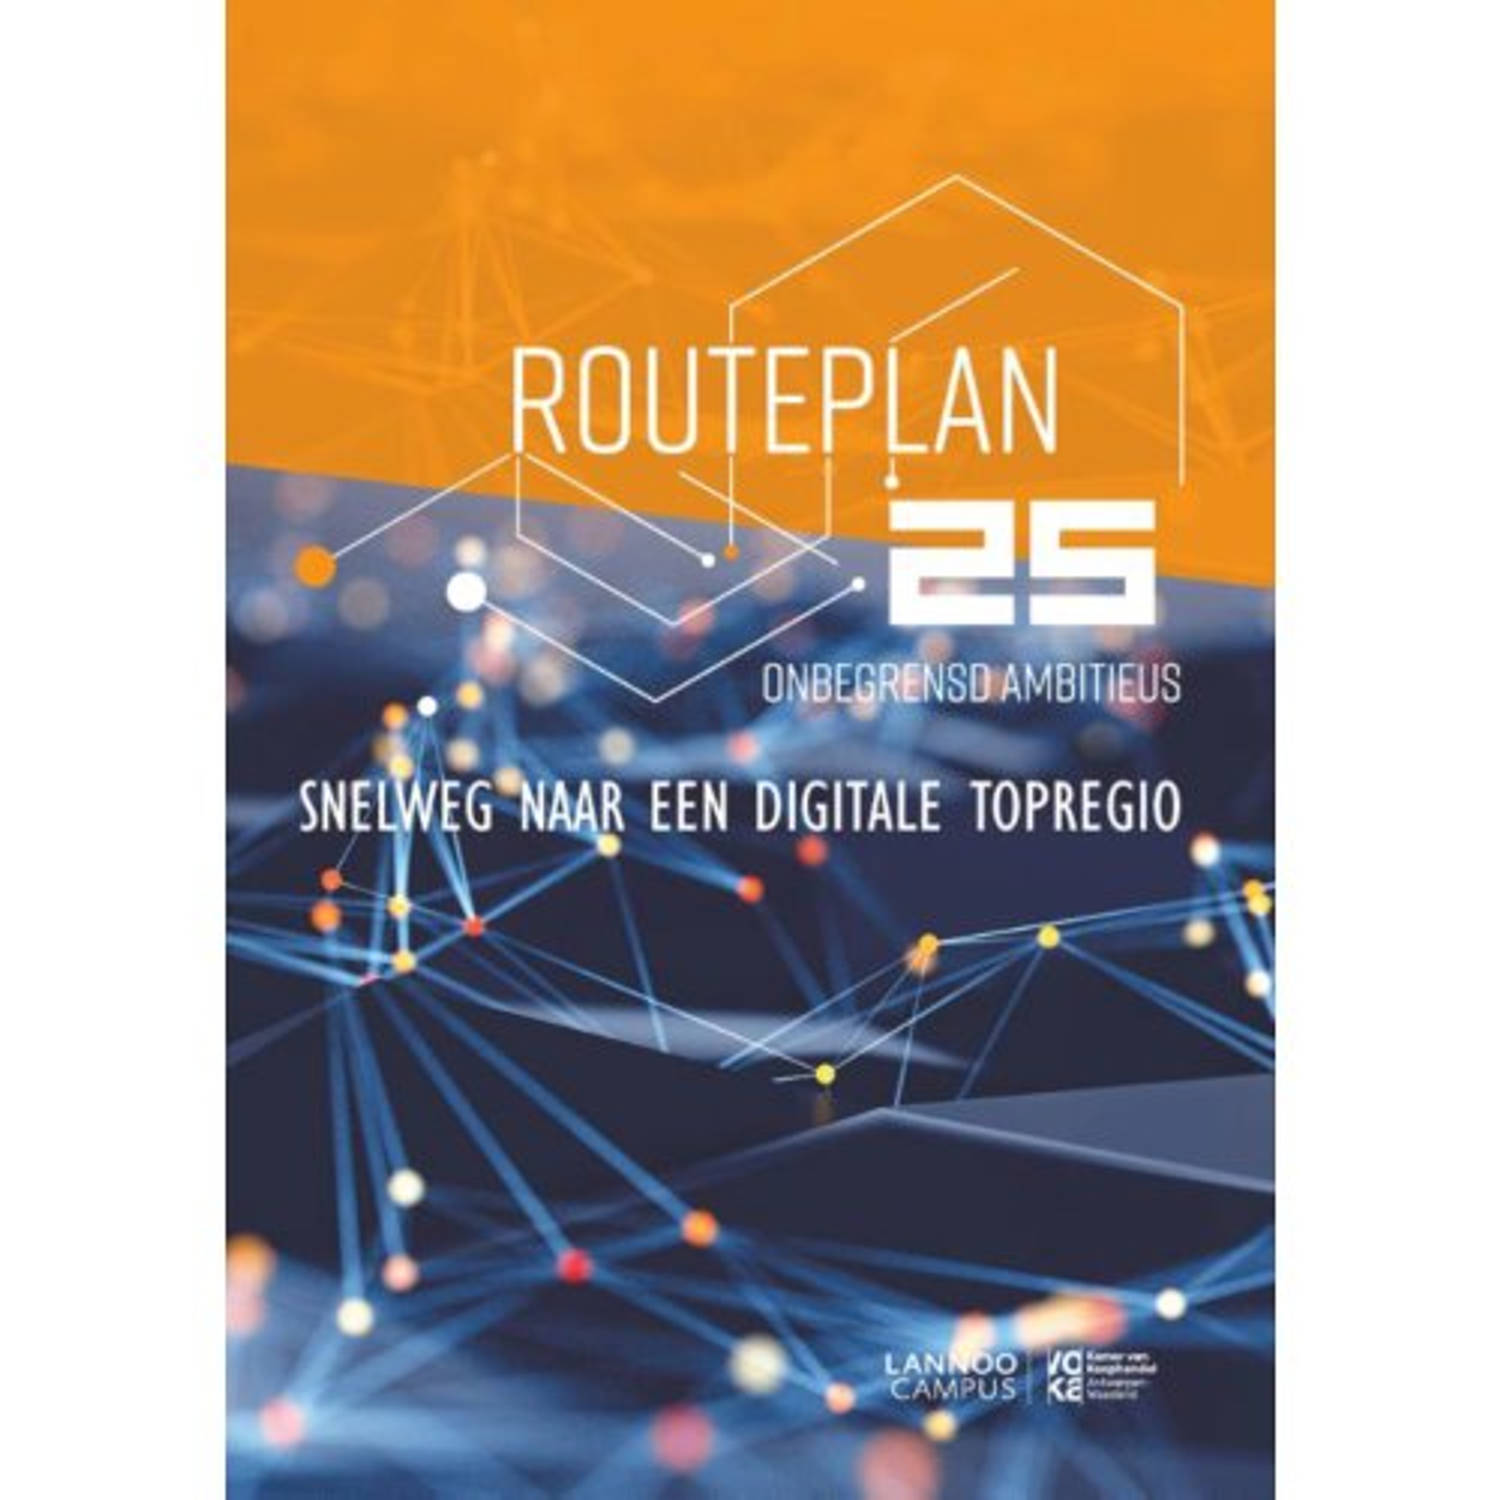 Routeplan 25